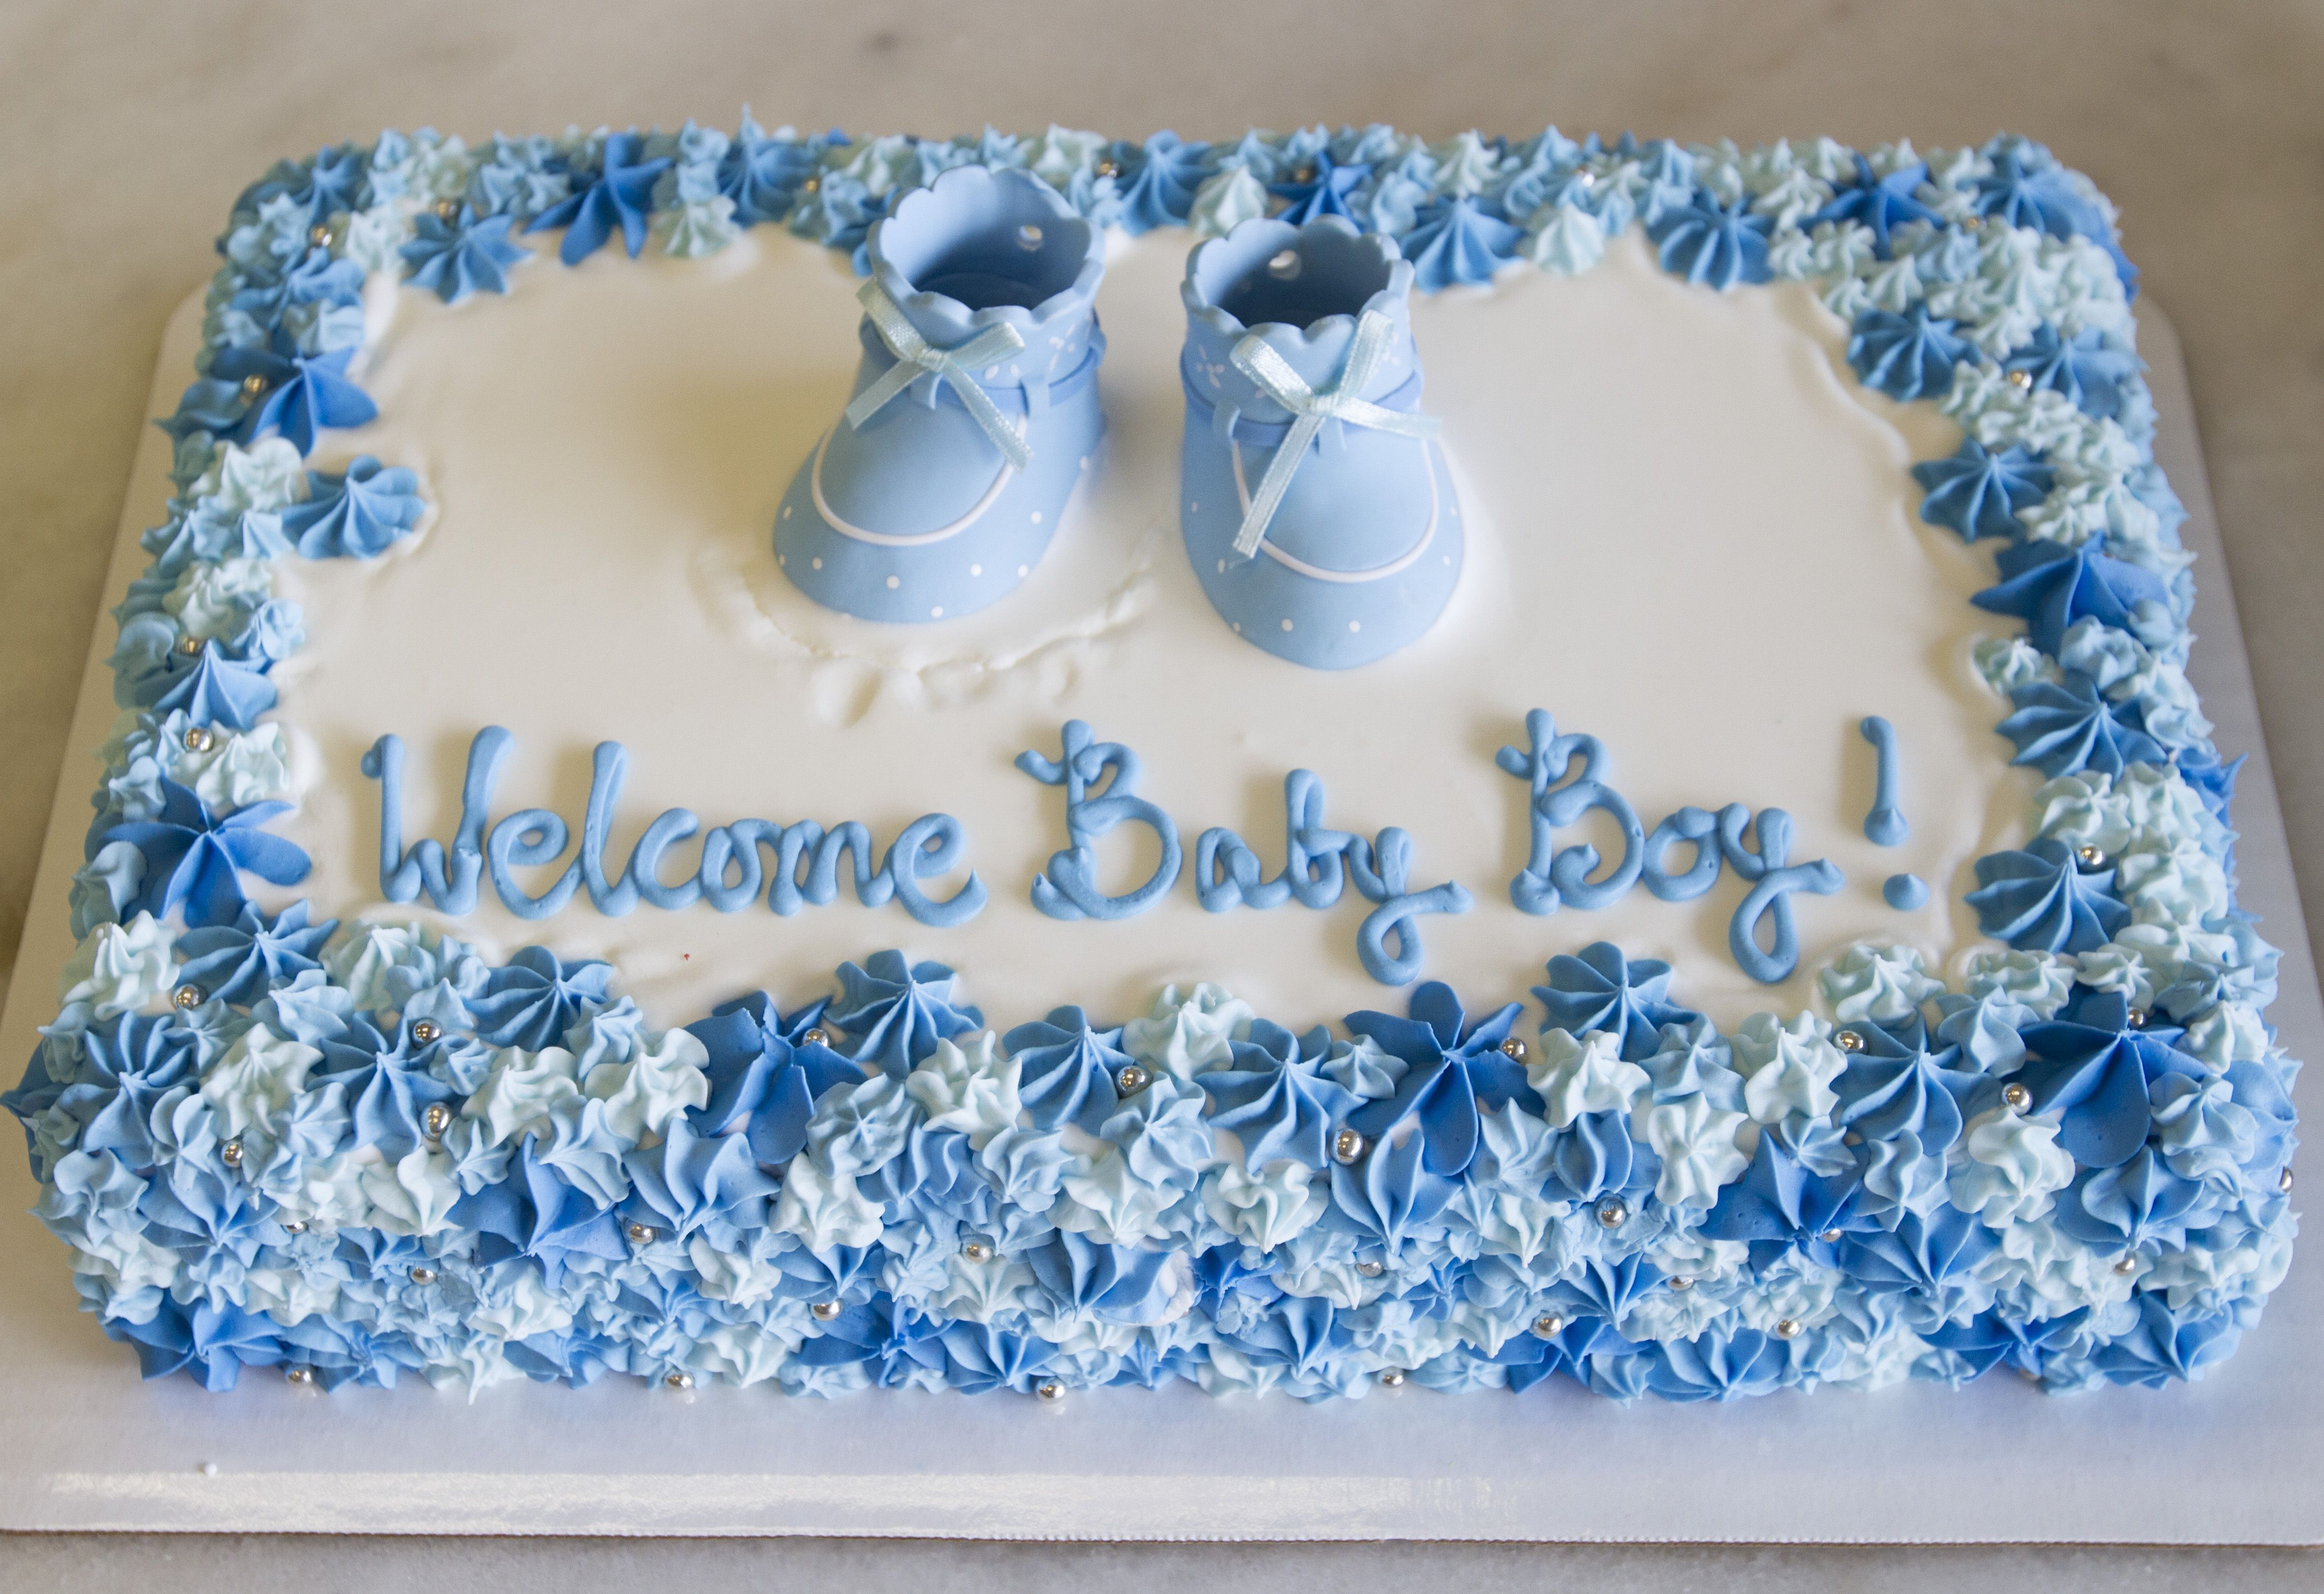 Welcome Home Baby Boy Cake Cake 035 Baby Shower Cakes For Boys Baby Shower Sheet Cakes Baby Shower Cakes